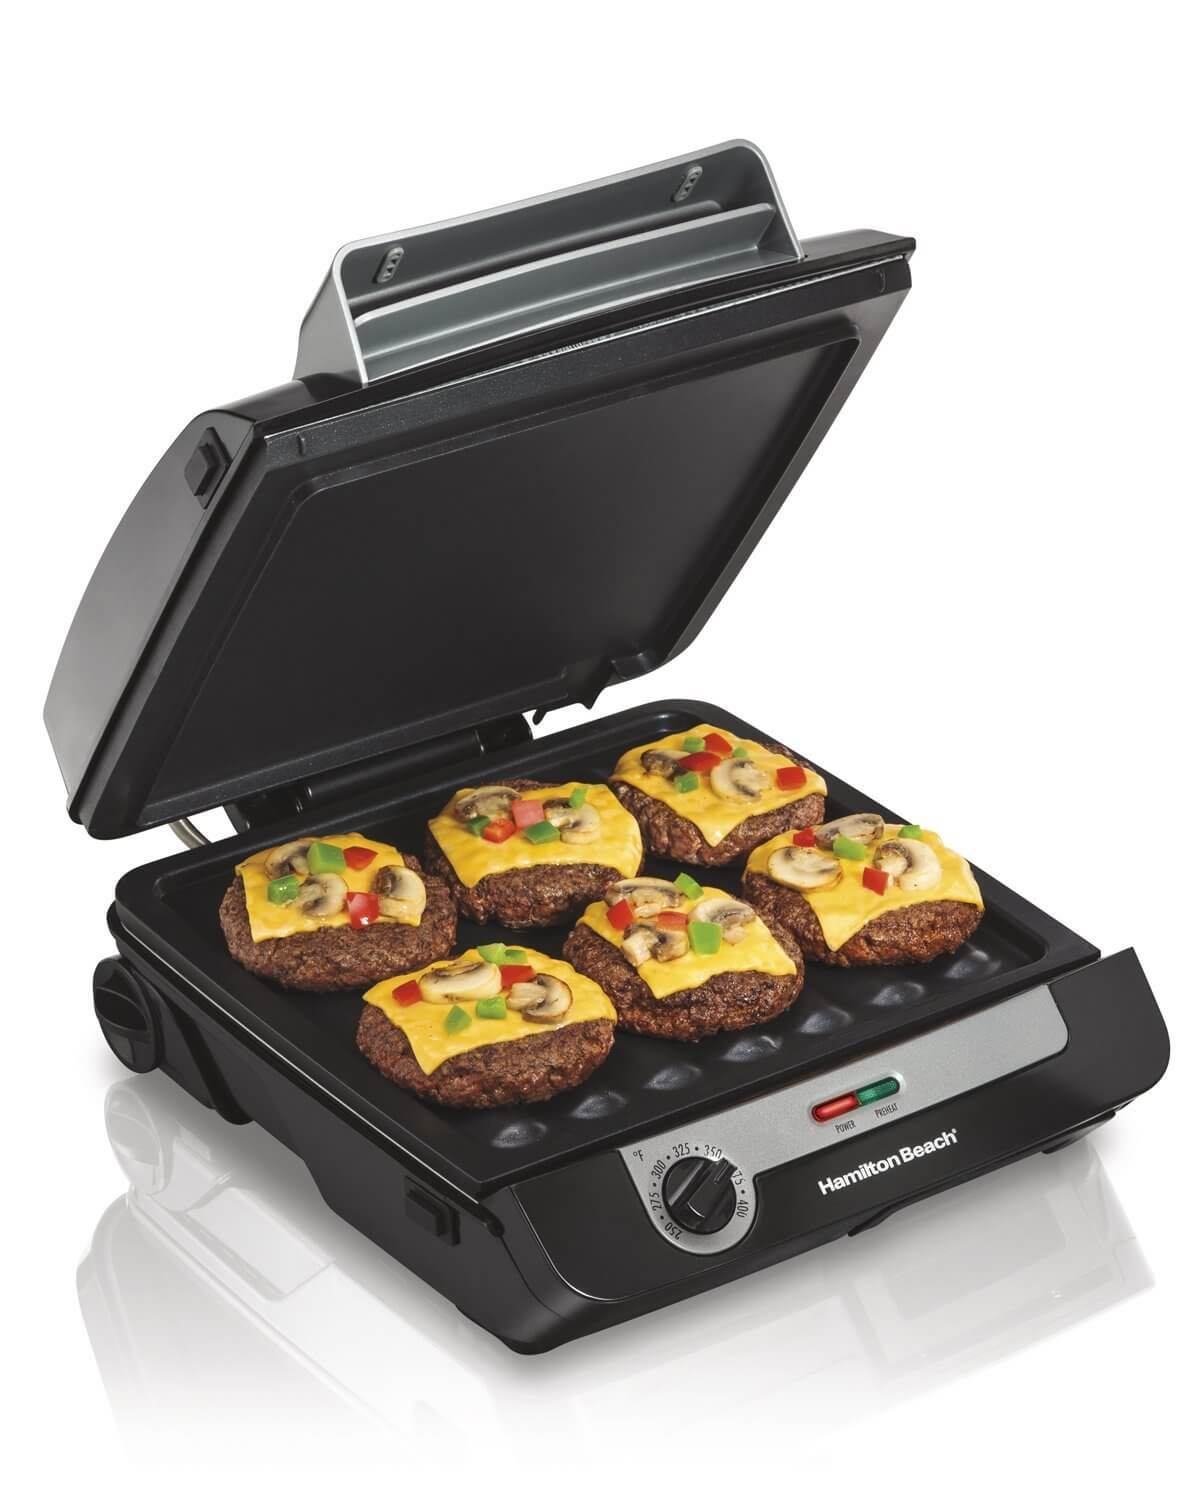 Hamilton Beach 3-in-1 MultiGrill Indoor Grill, Griddle & Bacon Cooker